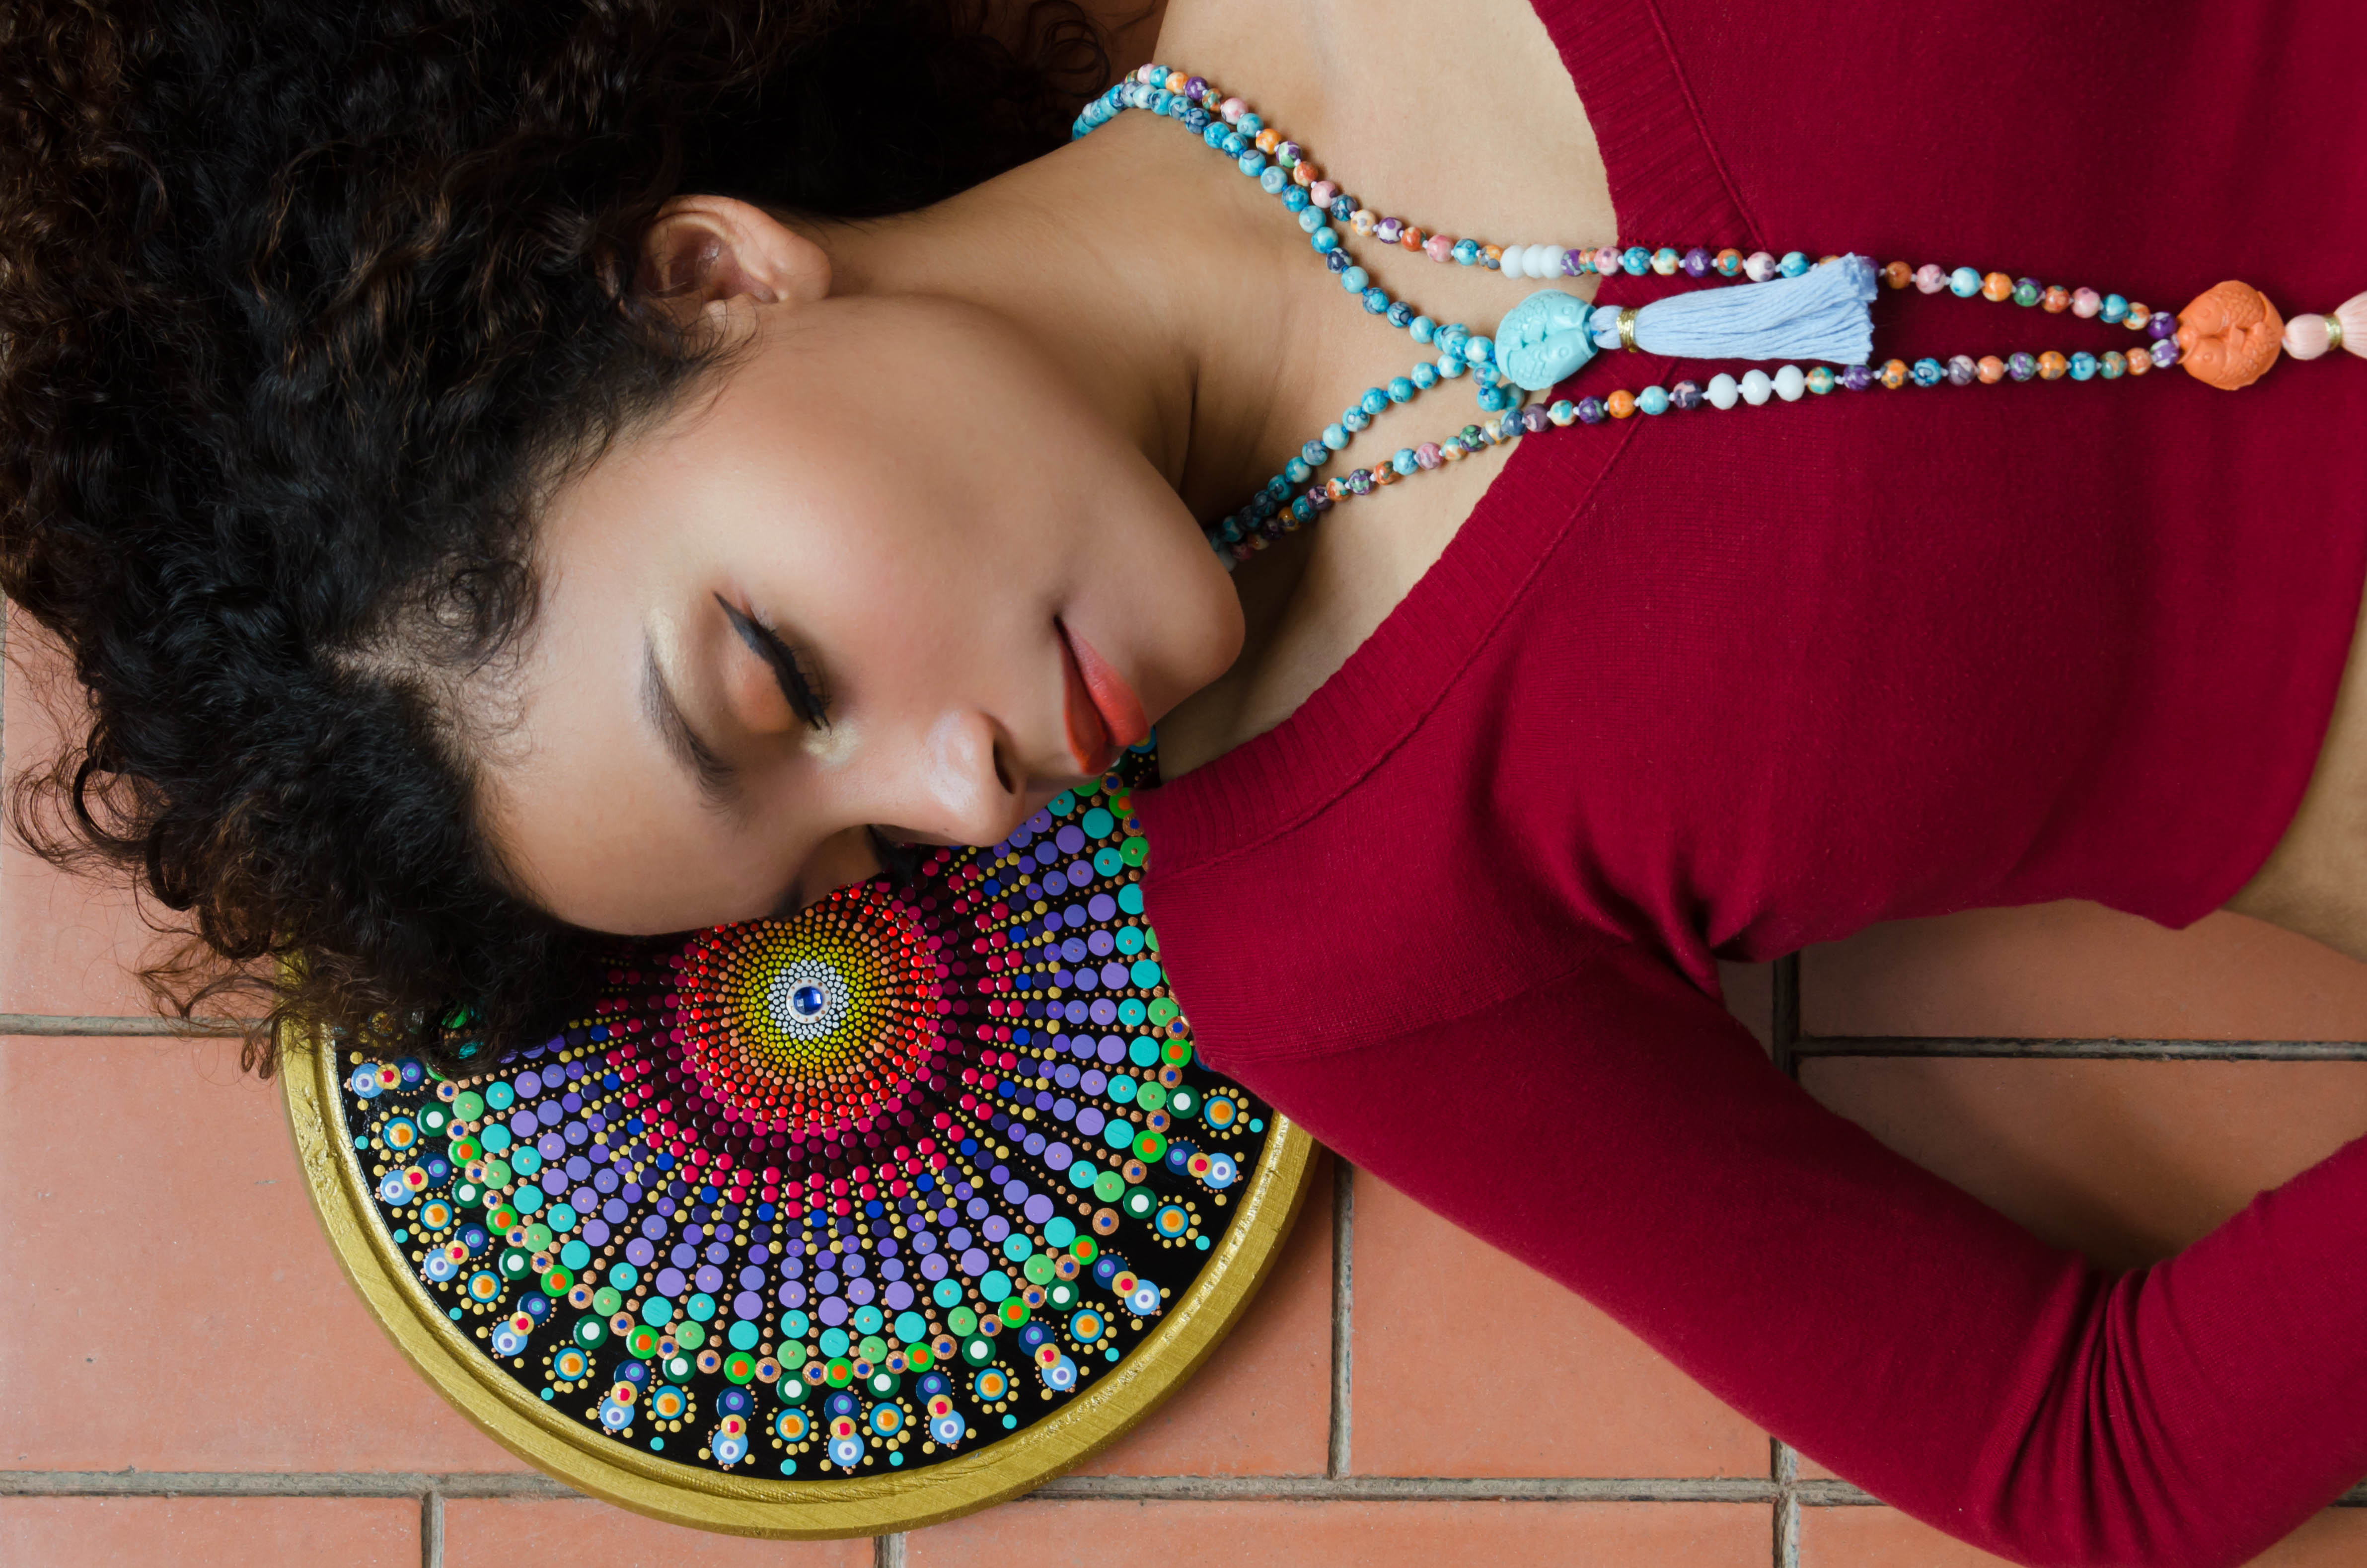 Beautiful hispanic woman lying down, her head resting on a mandala